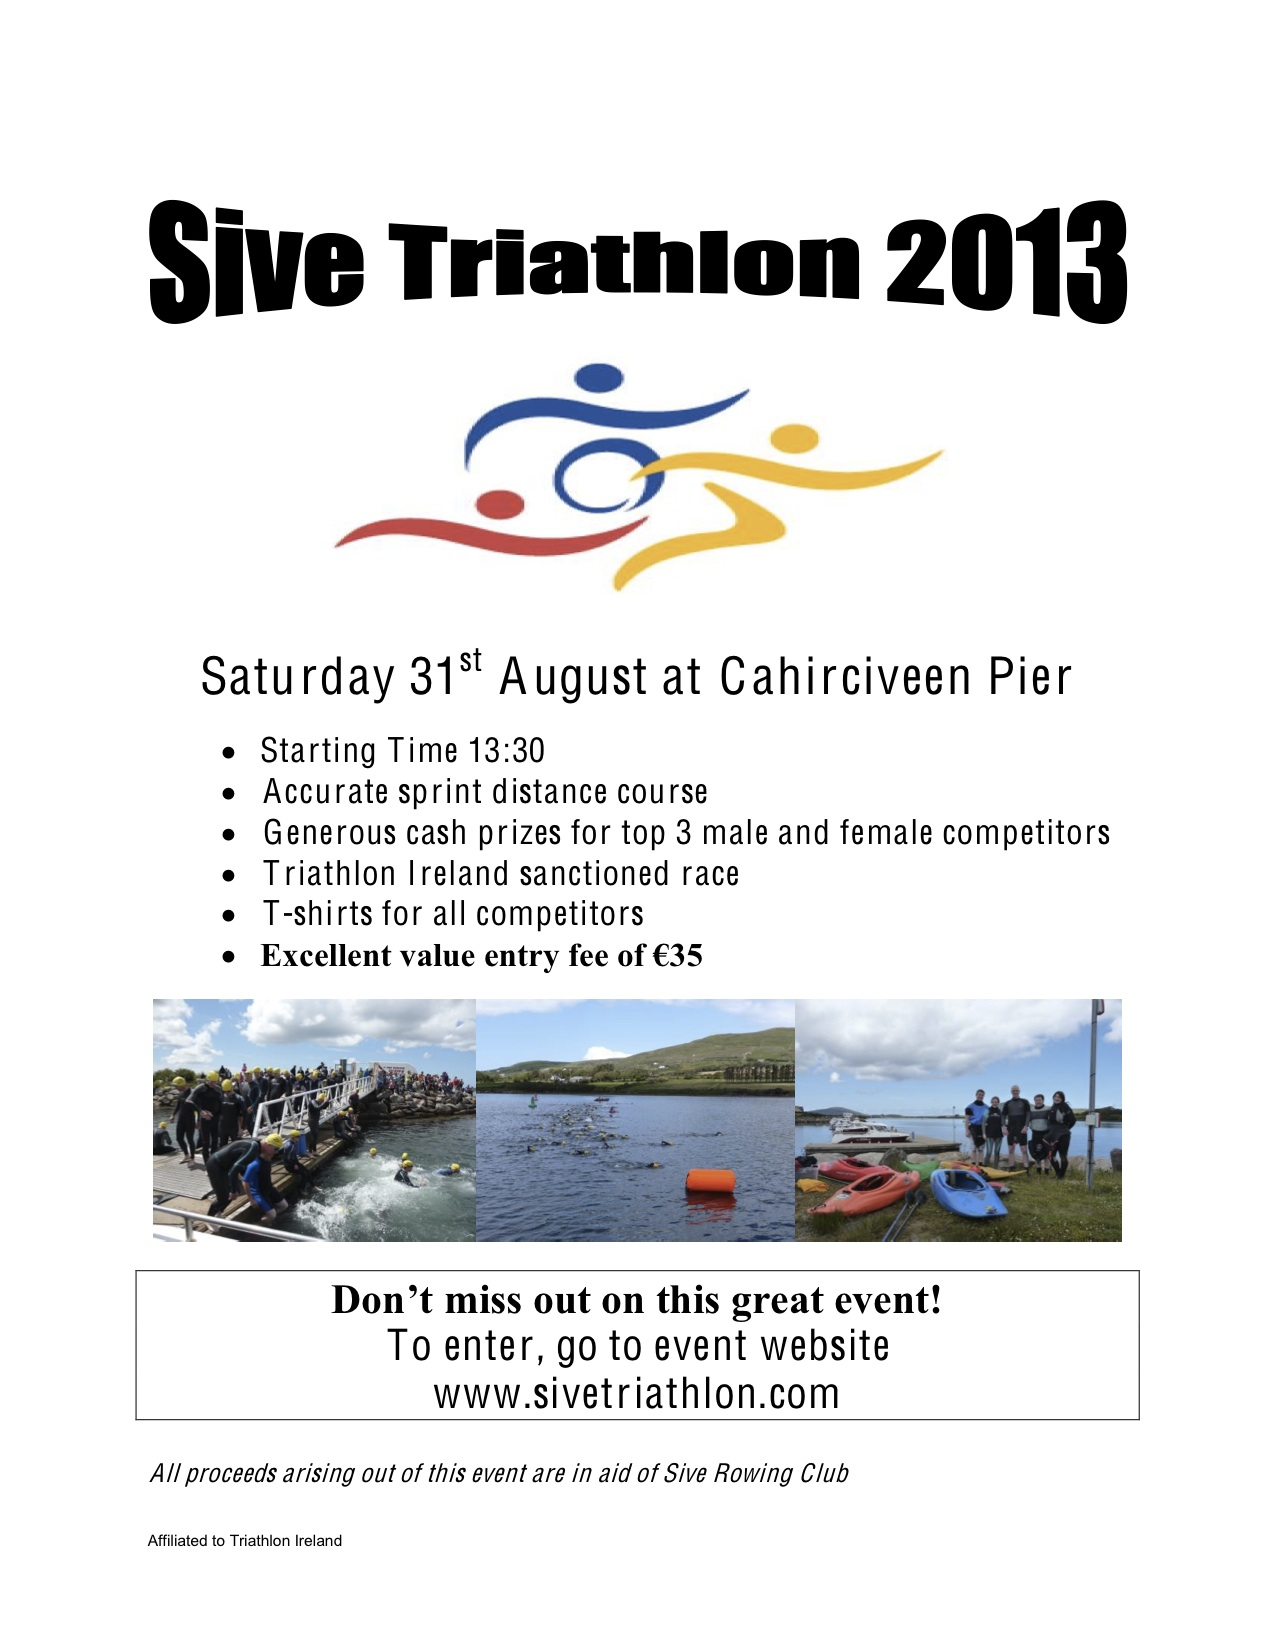 Sive Triathlon Event Flyer_130726